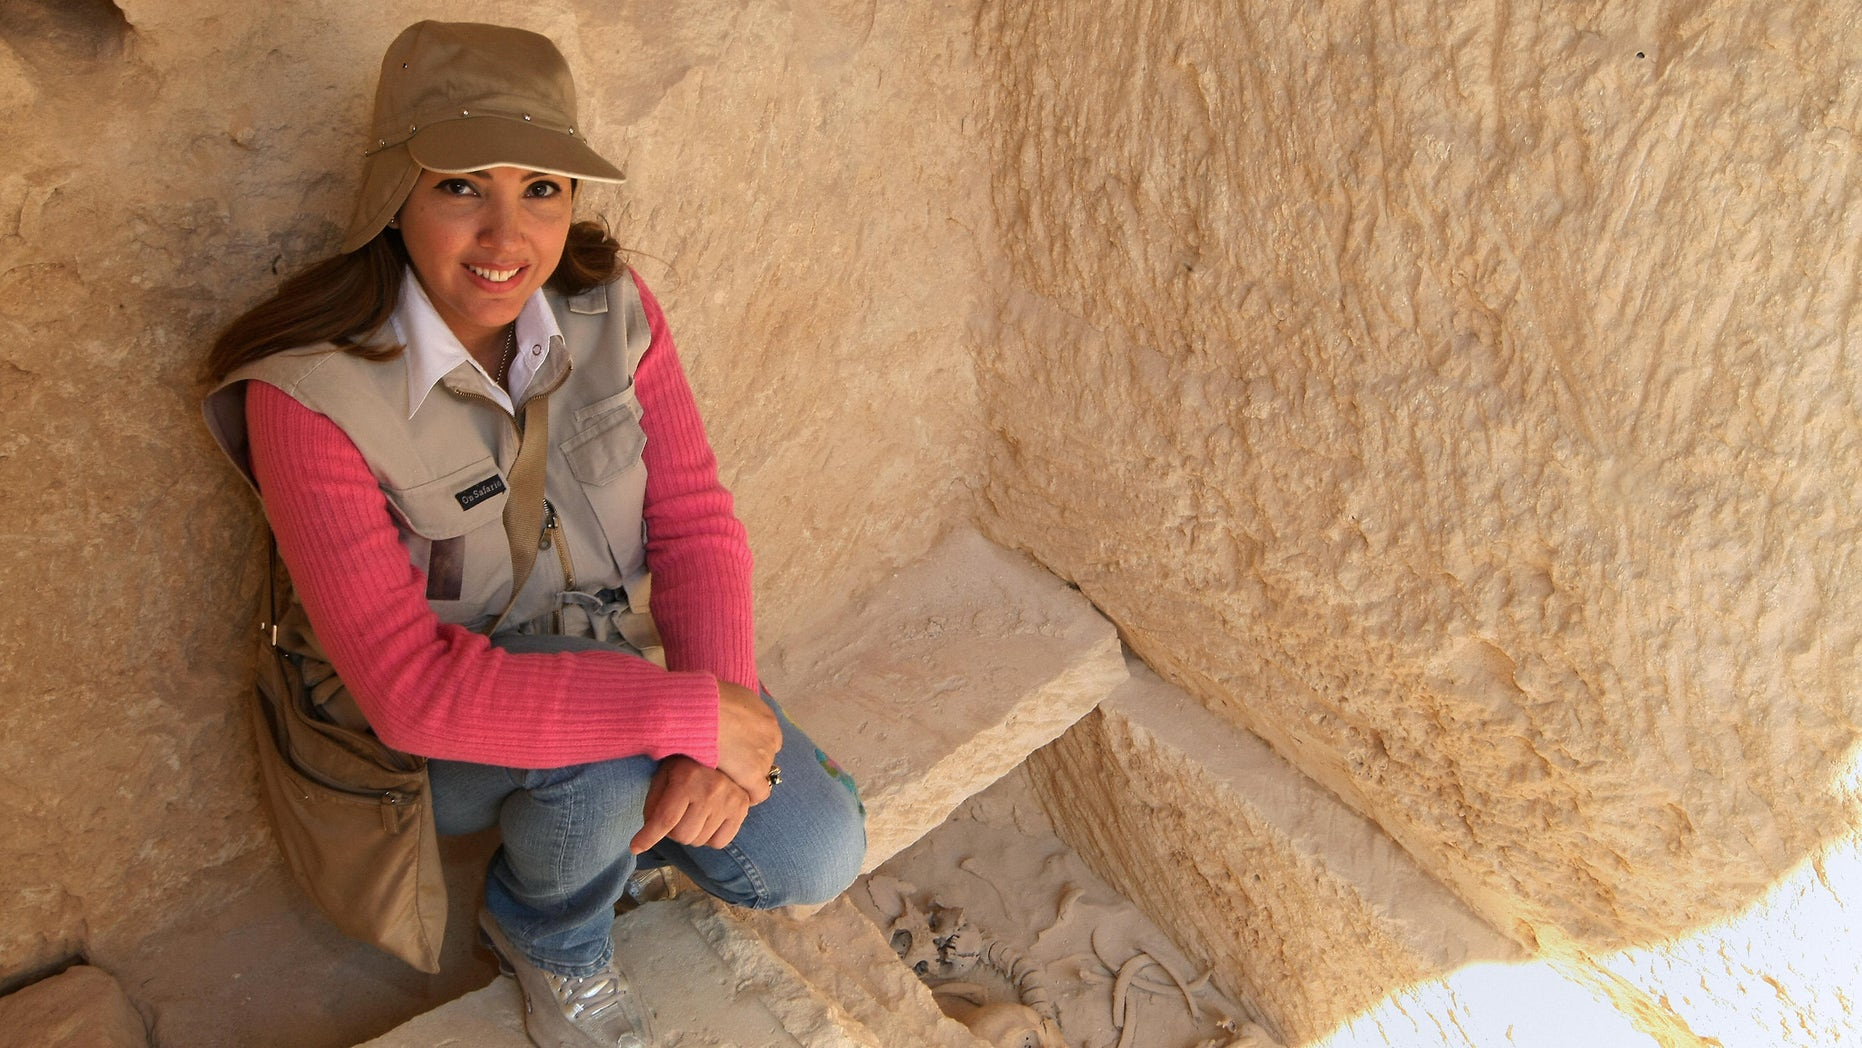 Kathleen Martinez, an Egyptologist from the Dominican Republic, sits near a grave found at the temple of Tasposiris Magna near Borg al-Arab, 50 kms (30 miles) west of Alexandria, on April 19, 2009. Archaeologists searching for the tomb of Marc Anthony and Cleopatra may be closer to locating the burial site of the legendary lovers, Egypt's antiquities council said. A team led by antiquities chief Zahi Hawass and Martinez believes the tomb may be located in three possible sites near the temple and will excavate the three locations next week. AFP PHOTO/CRIS BOURONCLE (Photo credit should read CRIS BOURONCLE/AFP/Getty Images)